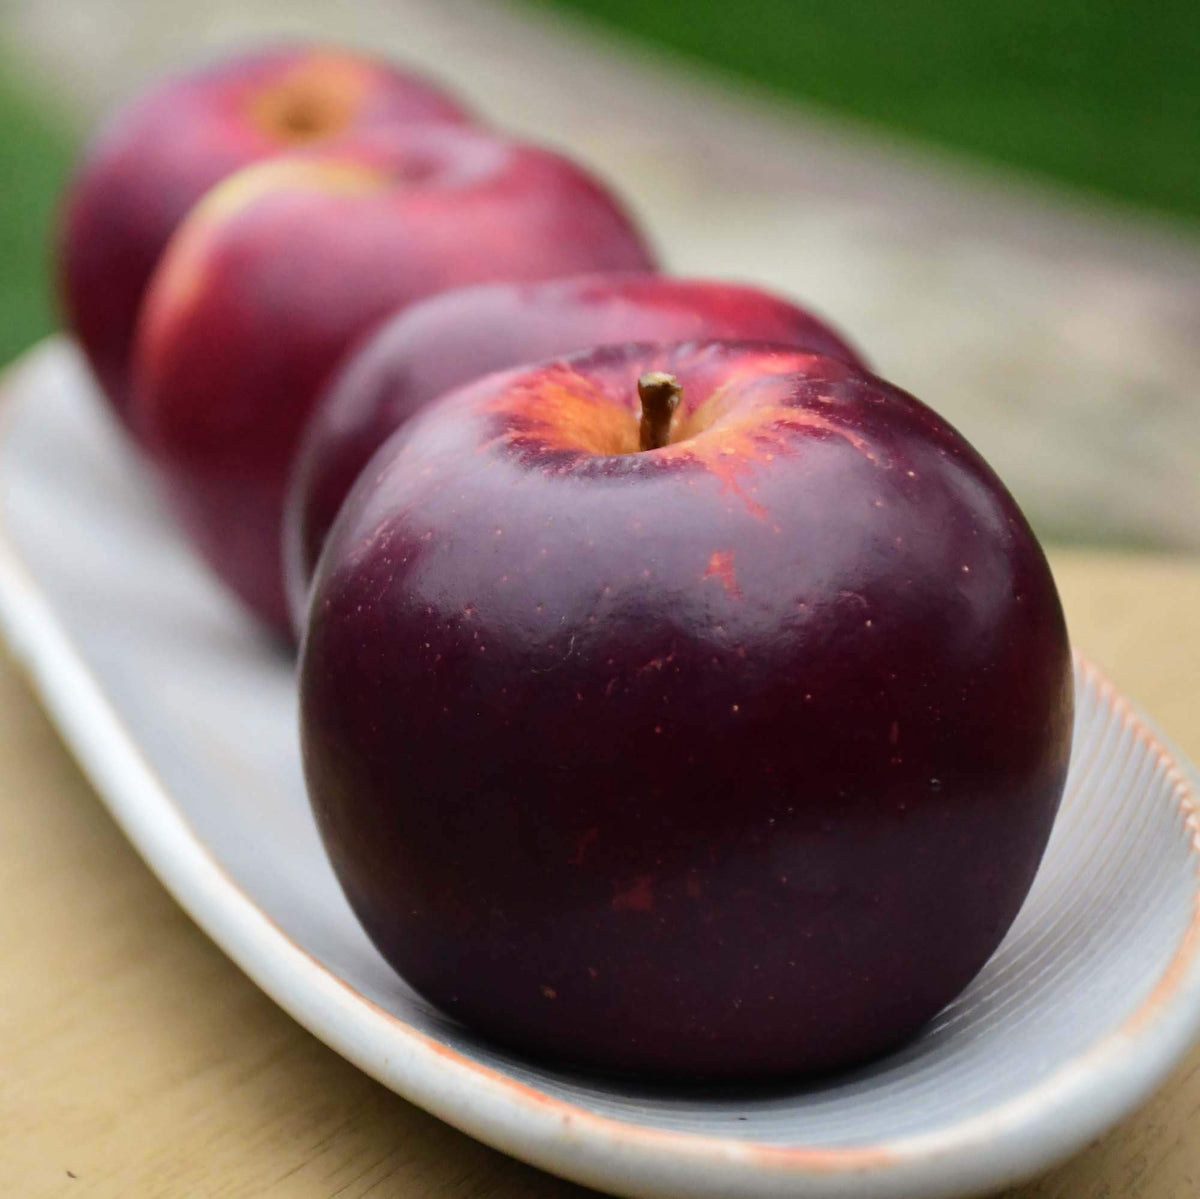 Organic Arkansas Black Apples